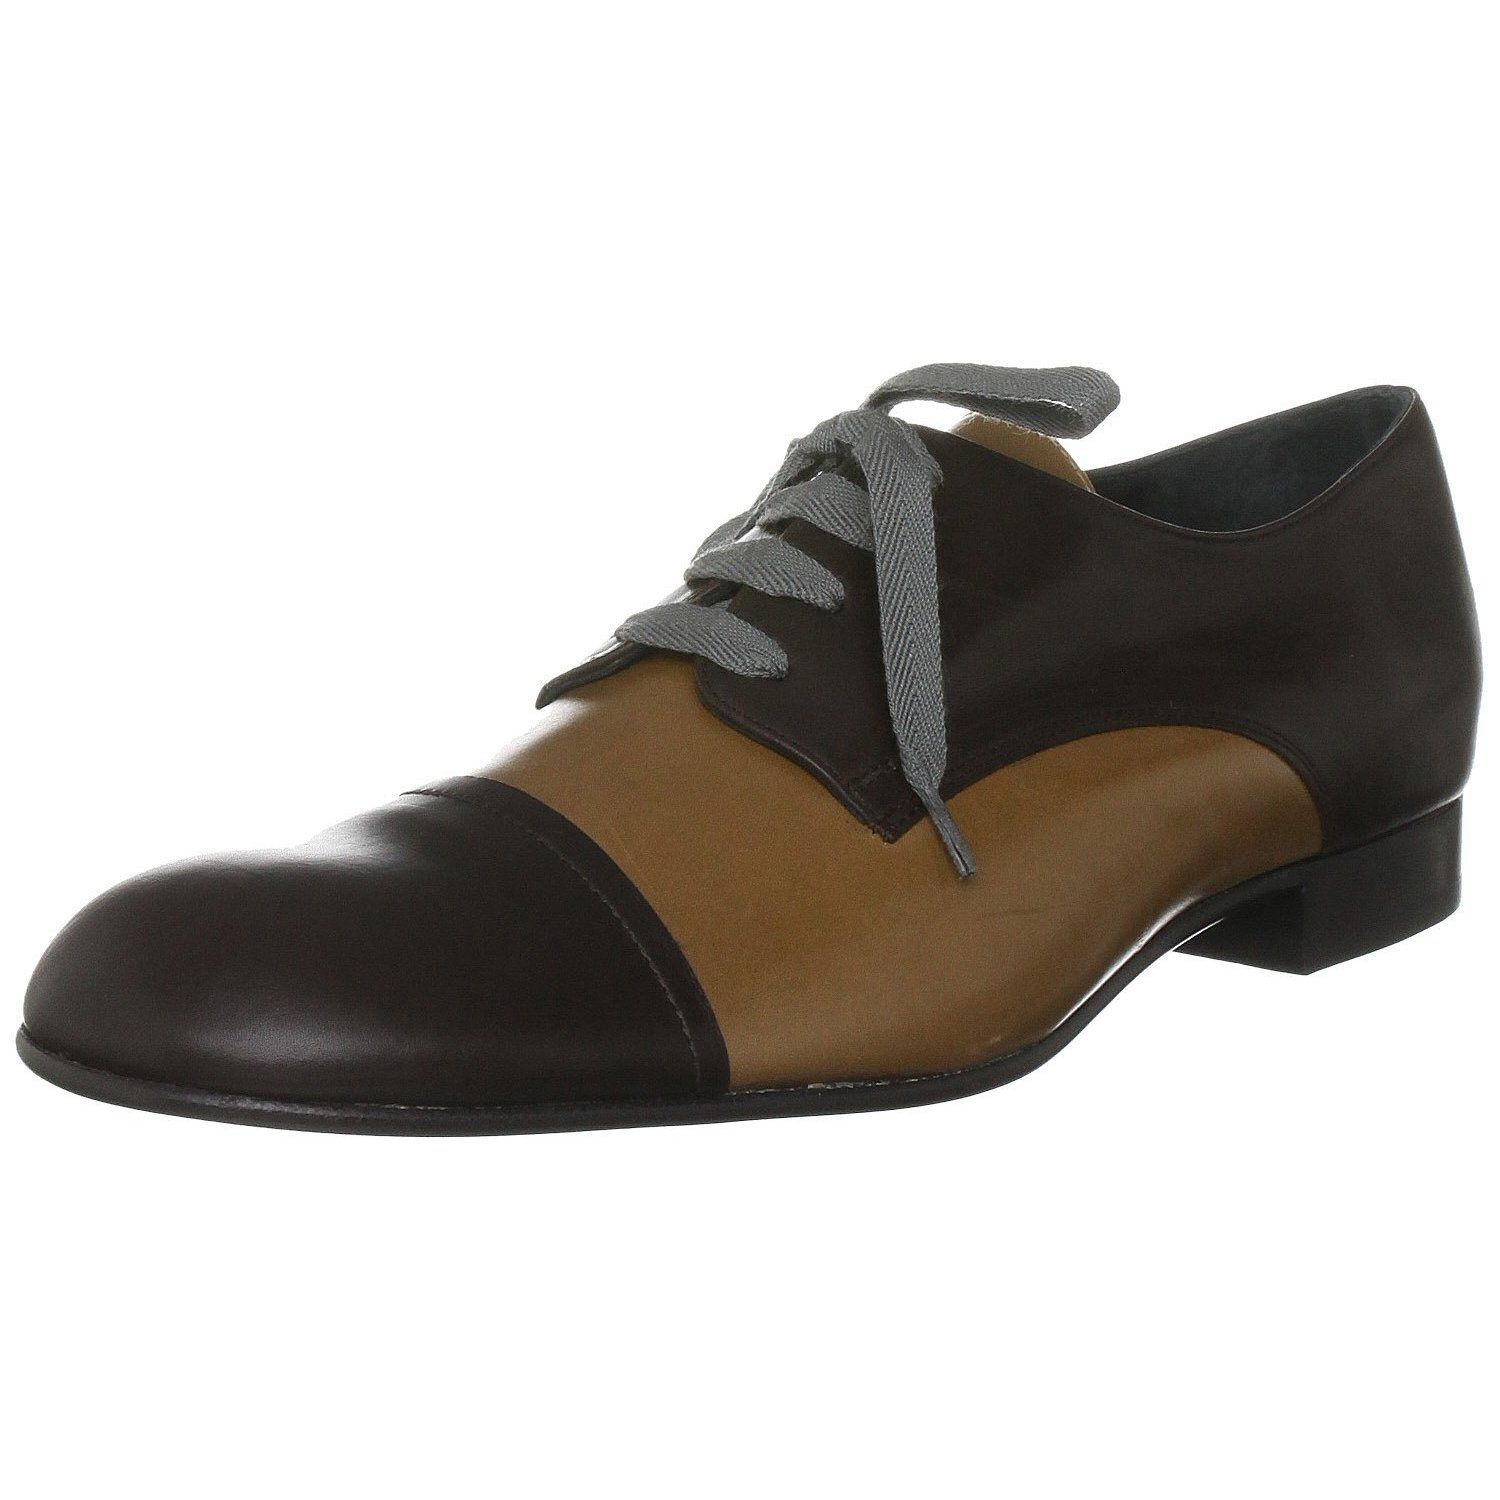 The Old Curiosity Shop Men's Dickens 8 Shoe - Free One-Day